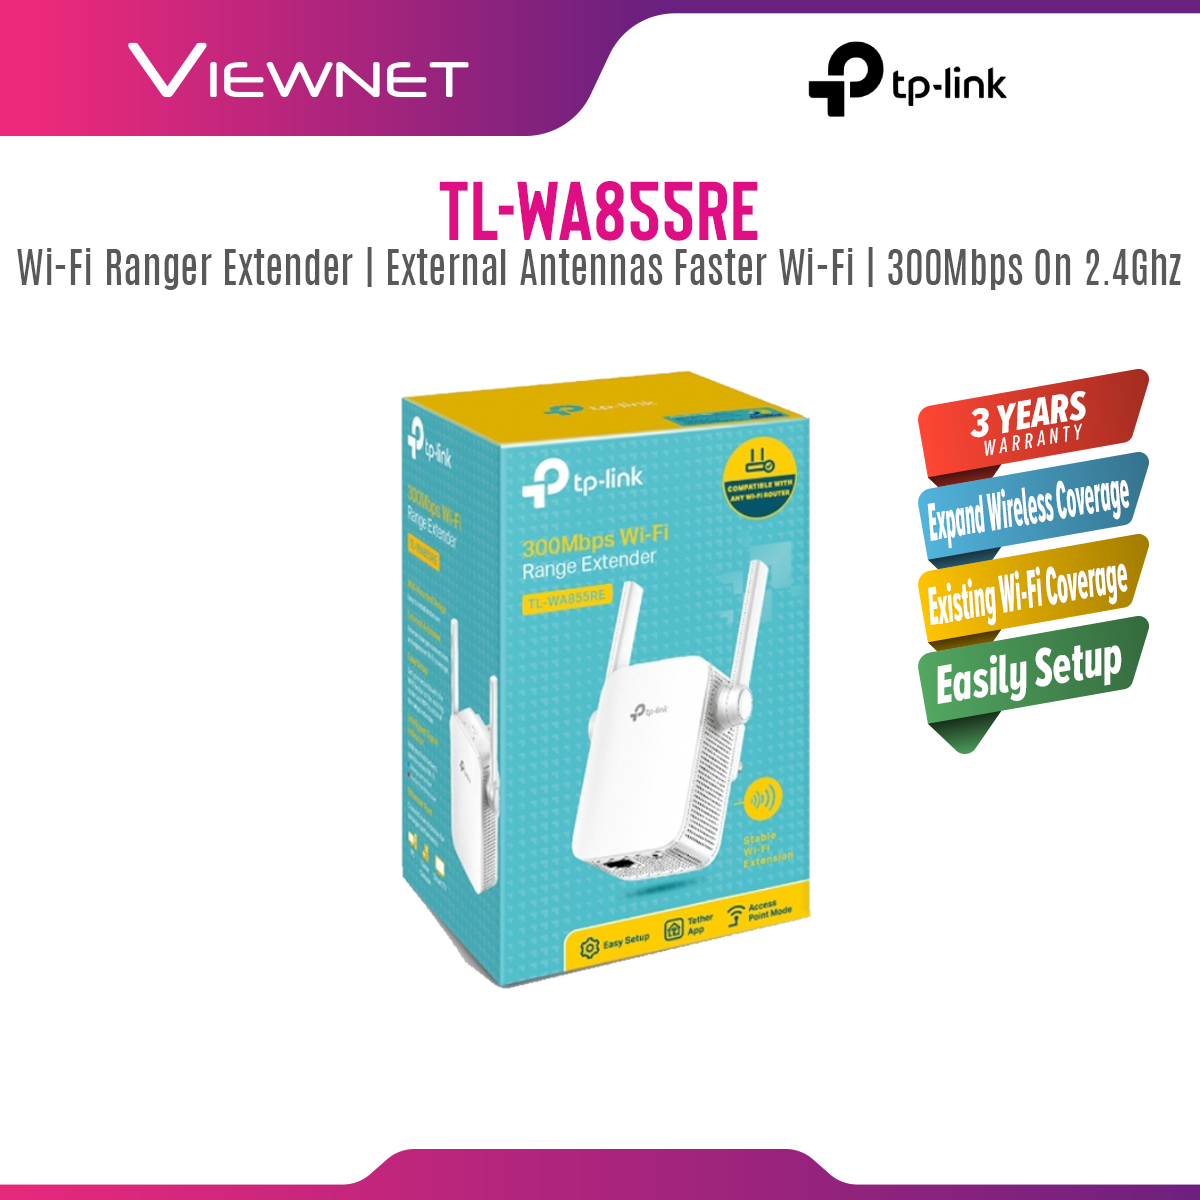 TP-LINK TL-WA855RE New Version 300Mbps Repeater Range Extender With AP